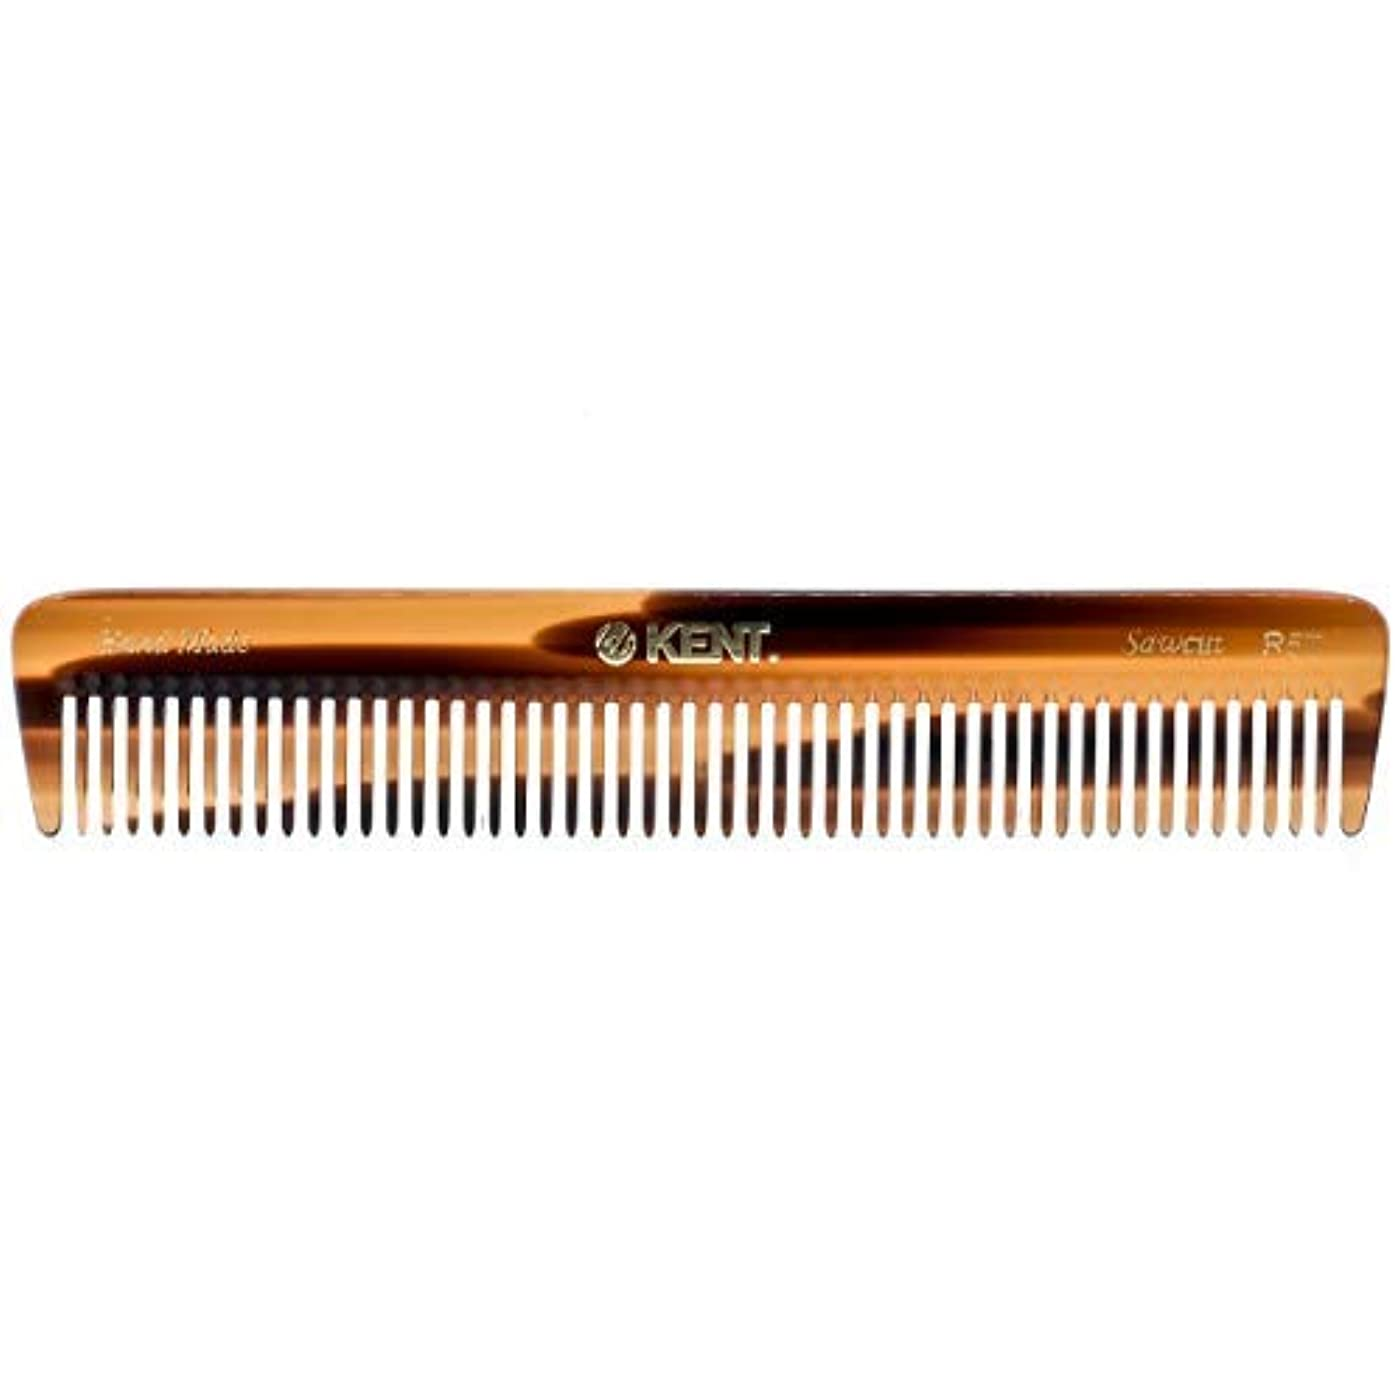 ルアー伴うオーブンKent The Hand Made Comb Coarse/Fine for Men 6.5 Inch, 1 Ounce [並行輸入品]